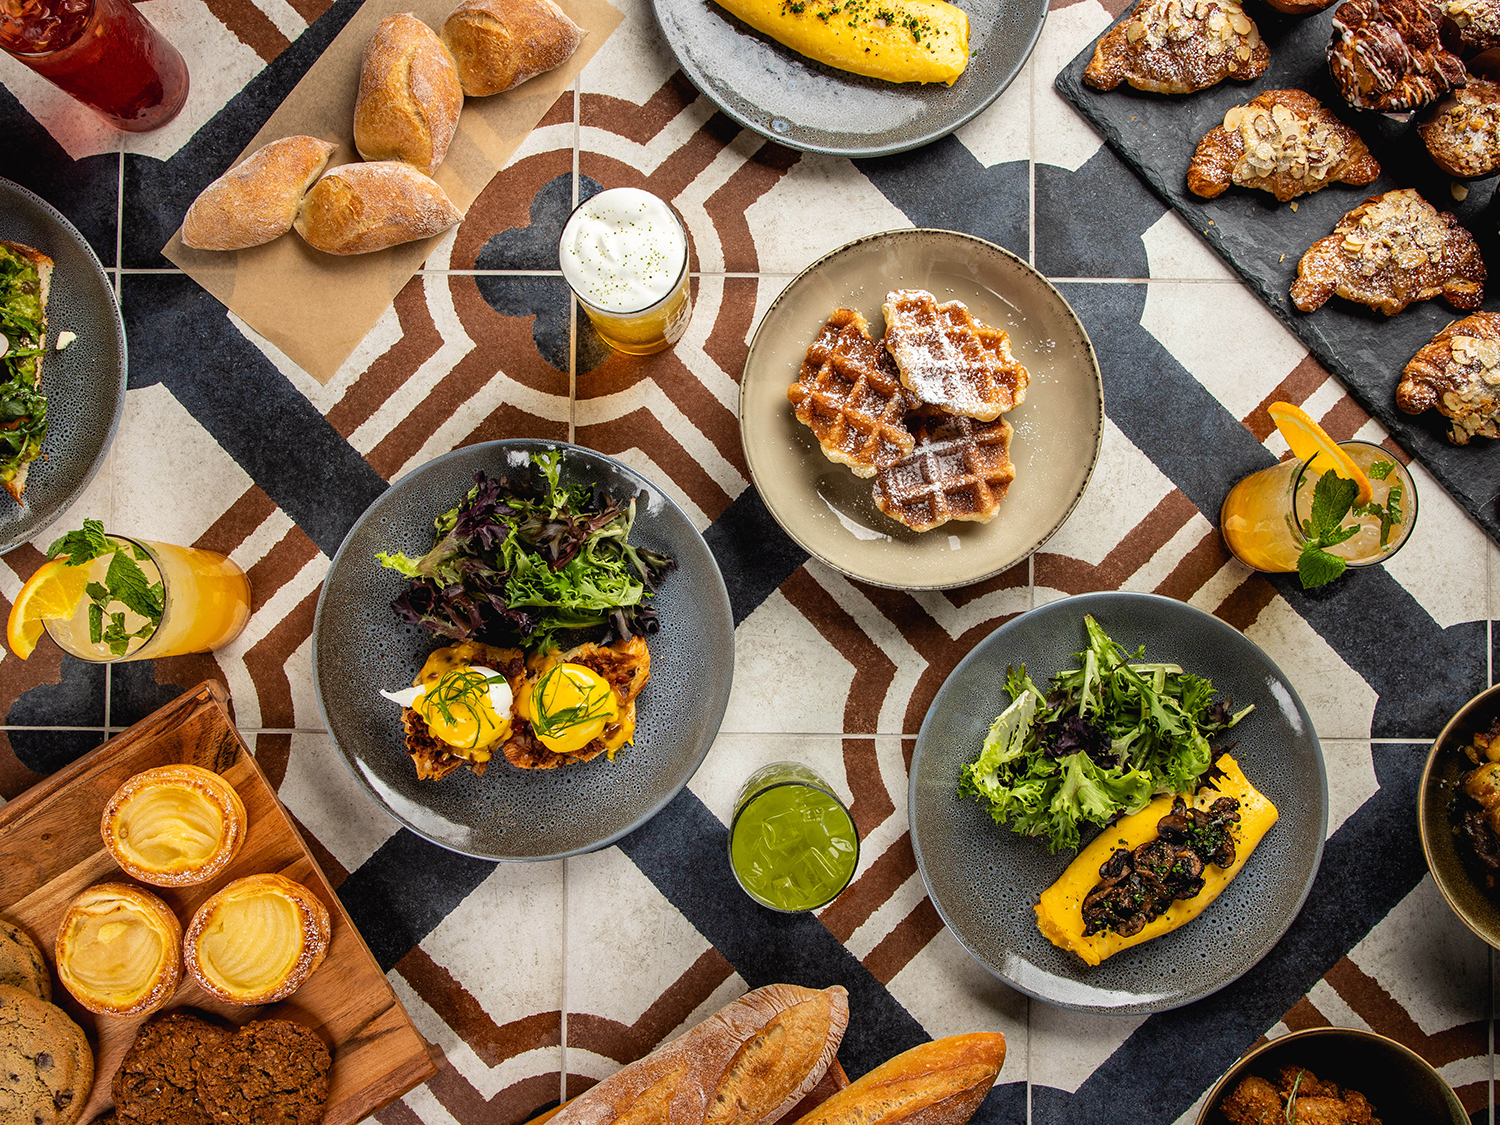 Overhead food spread from Artisan by 7 Leaves Cafe and Crema Bakery photo credit Max Milla